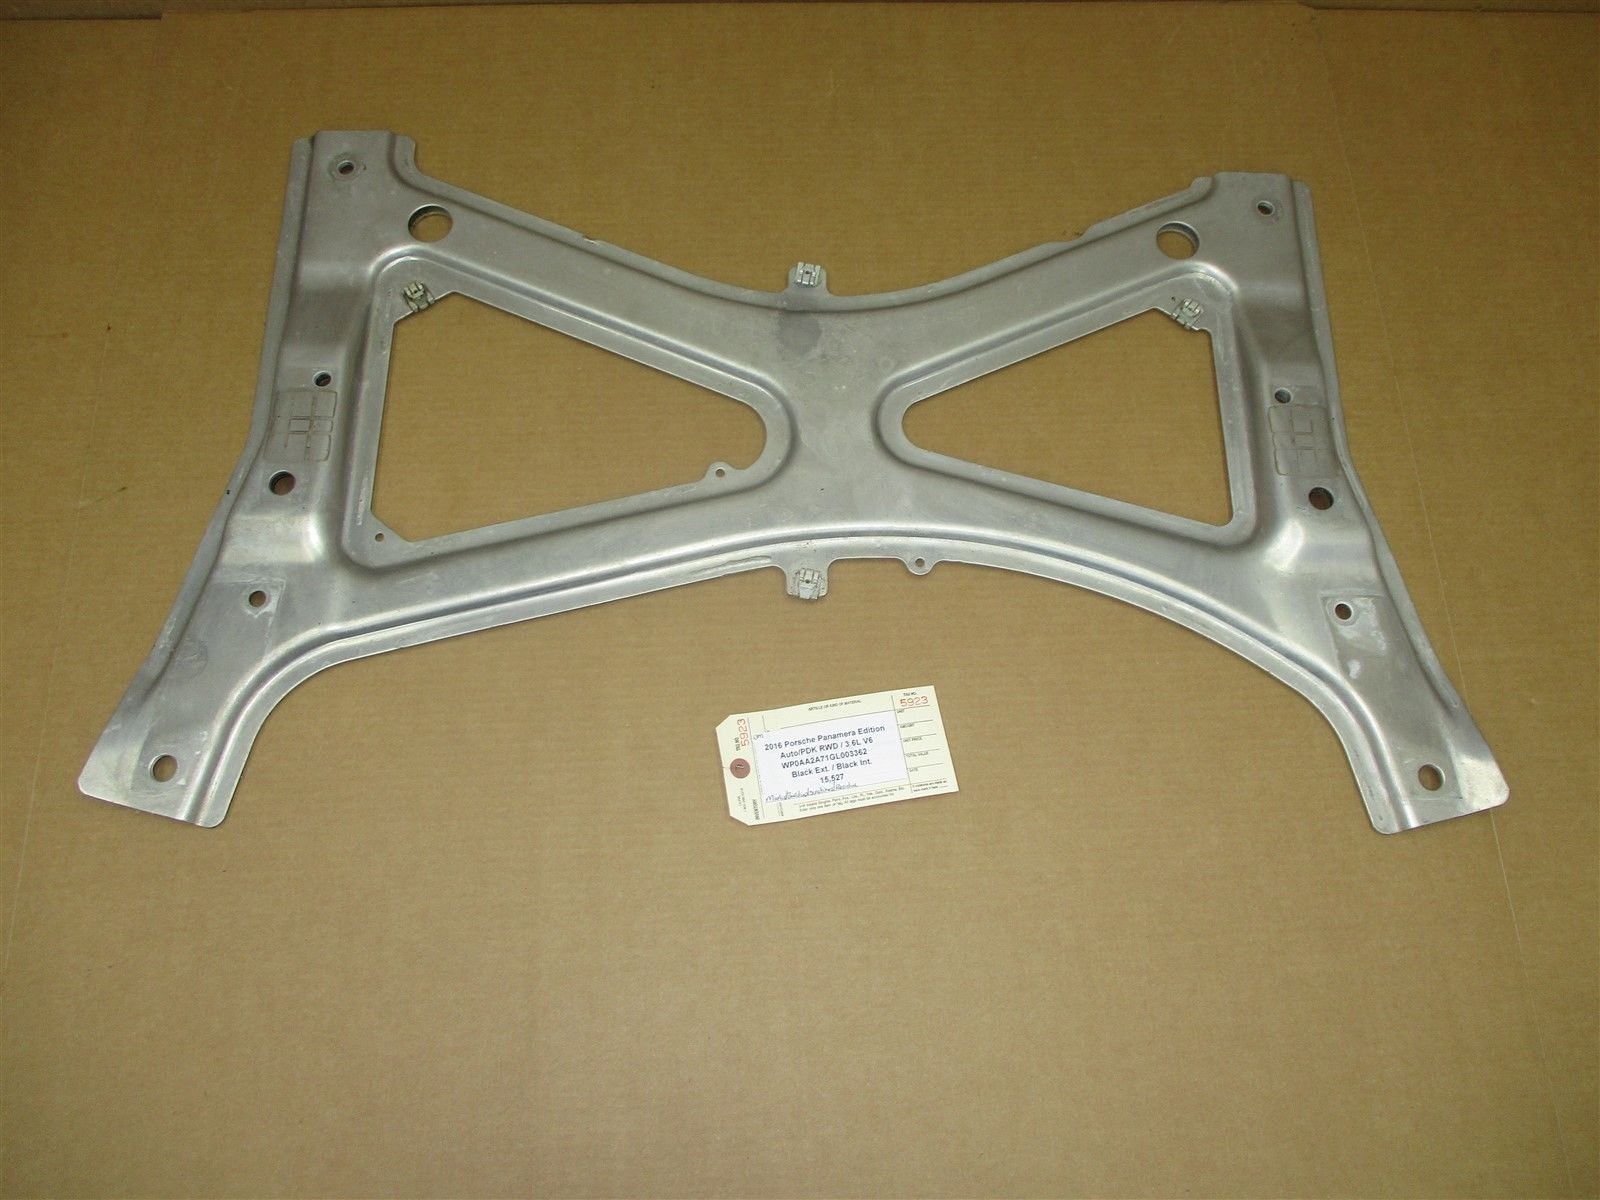 16 Panamera Edition RWD 971 Porsche CROSS MEMBER BRACKET 97034126106 15,527